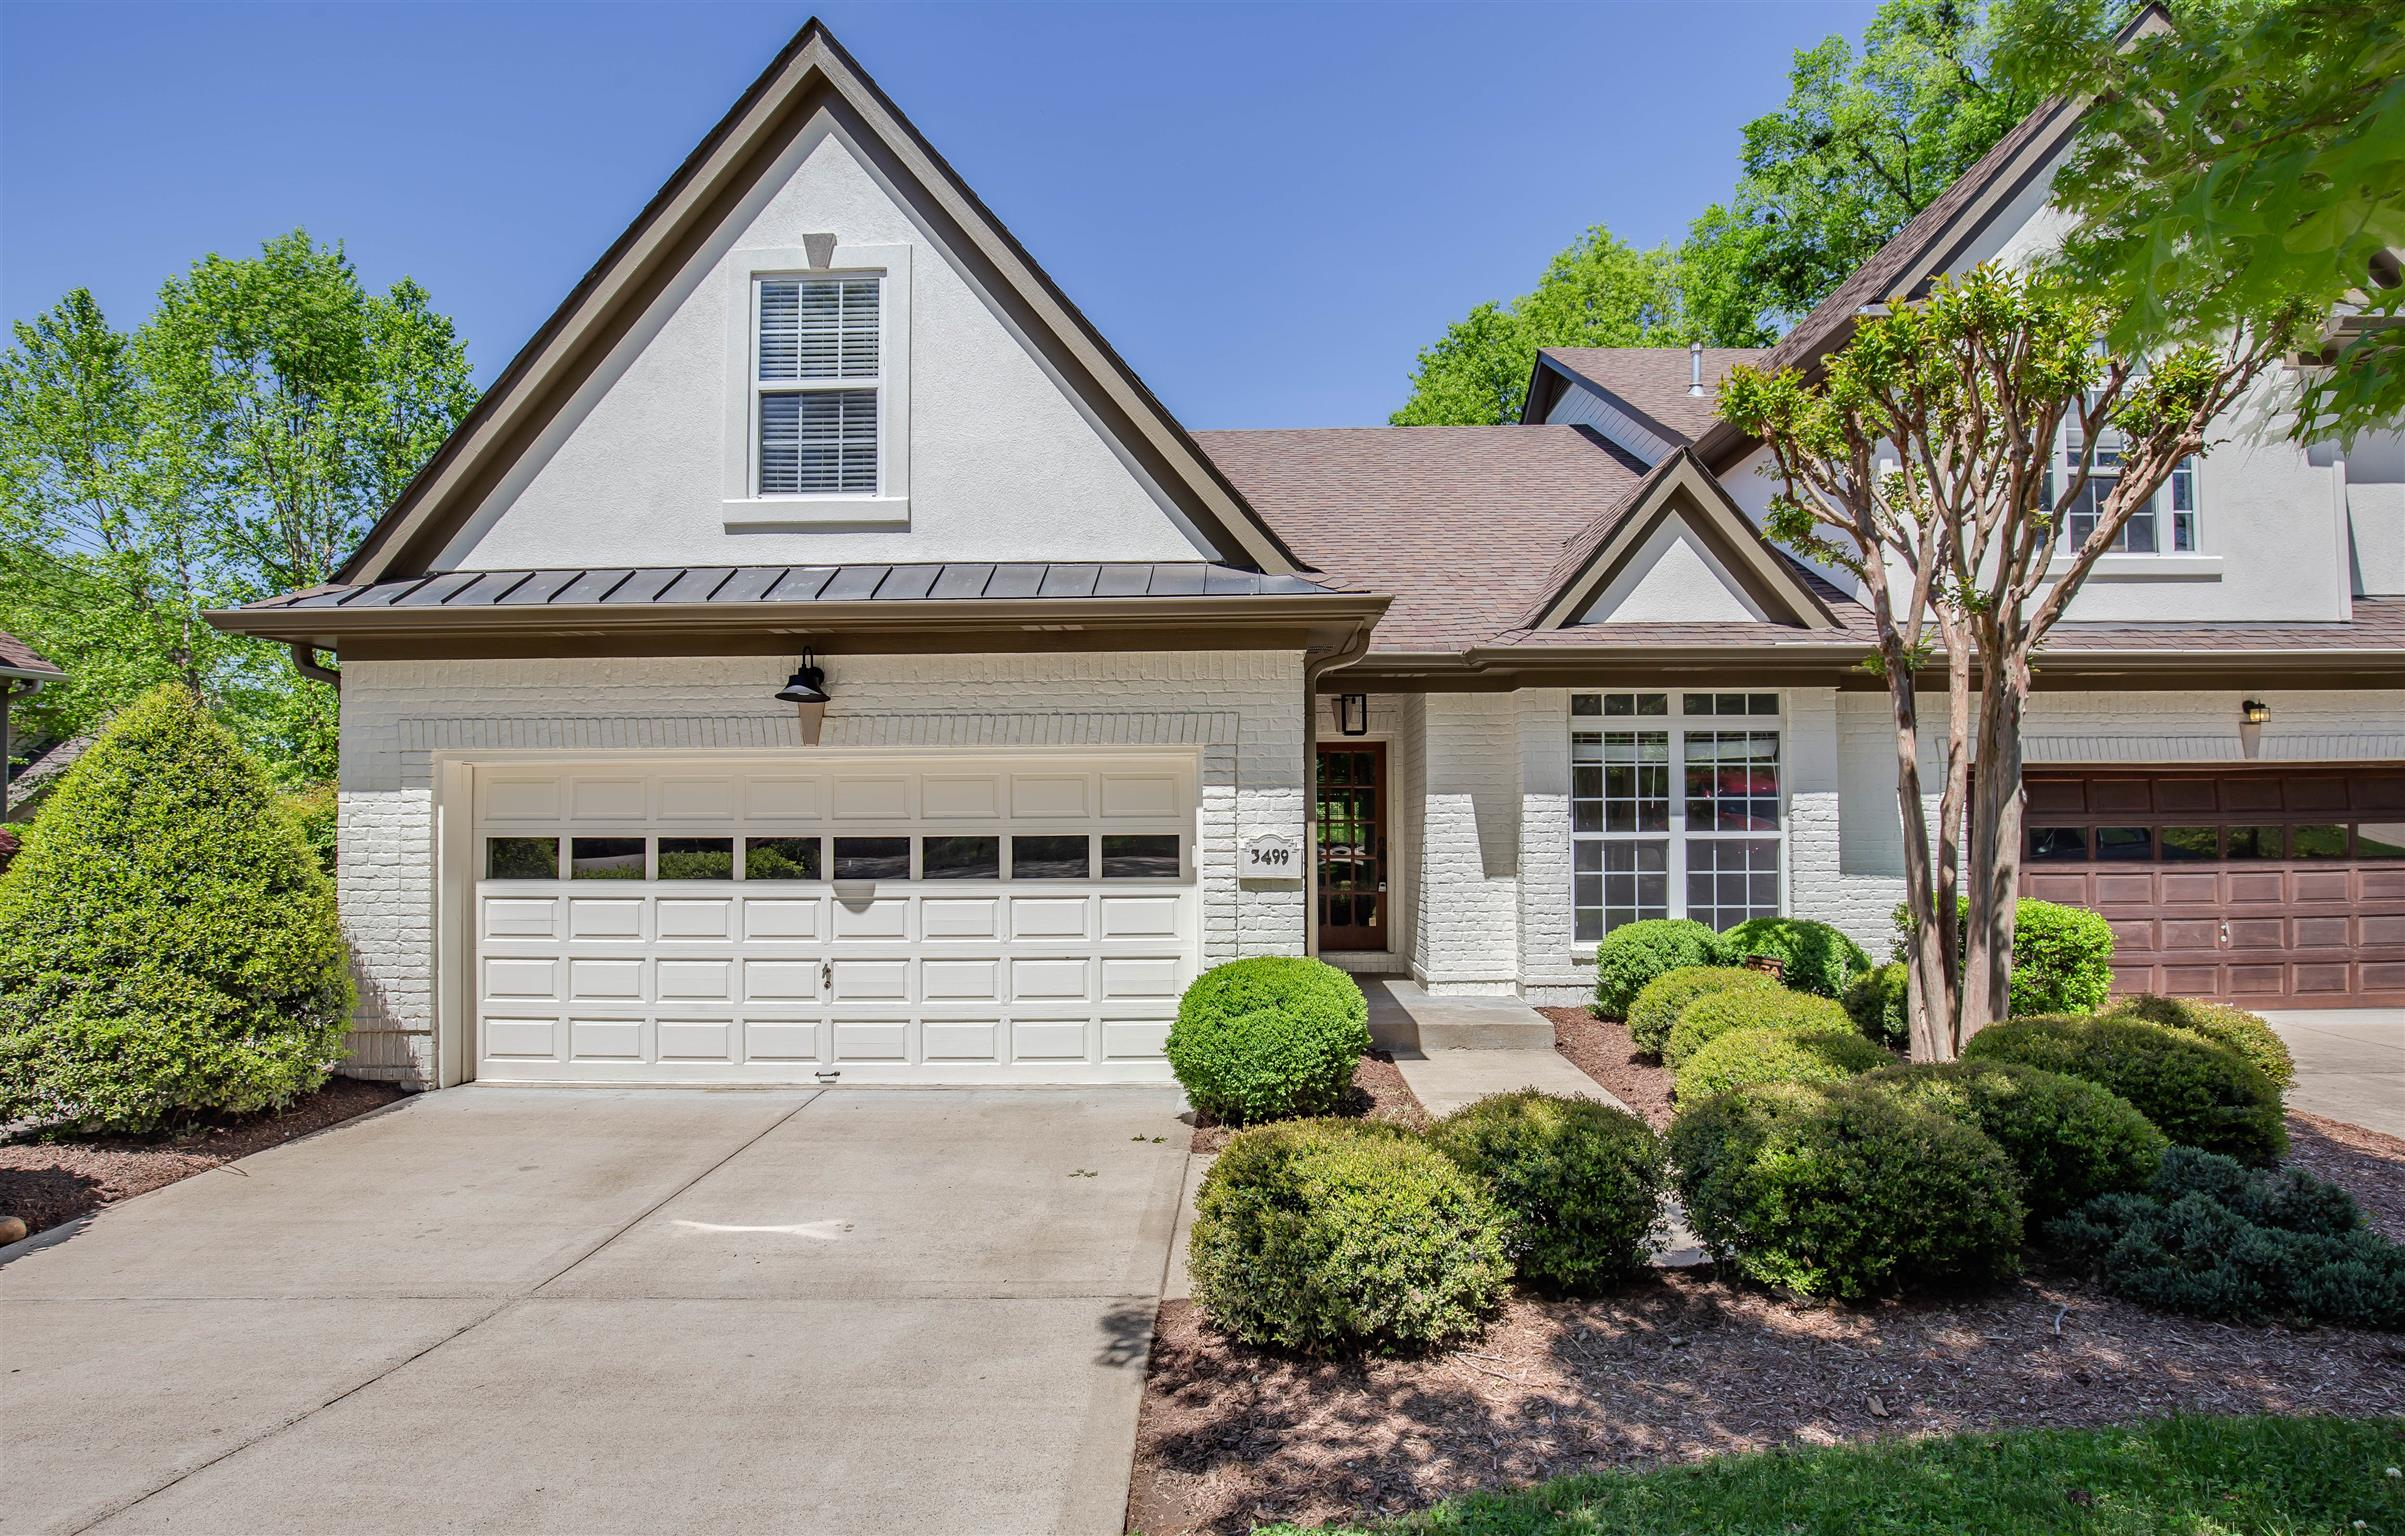 3499 General Hood Trail, Nashville-Southeast in Davidson County County, TN 37204 Home for Sale